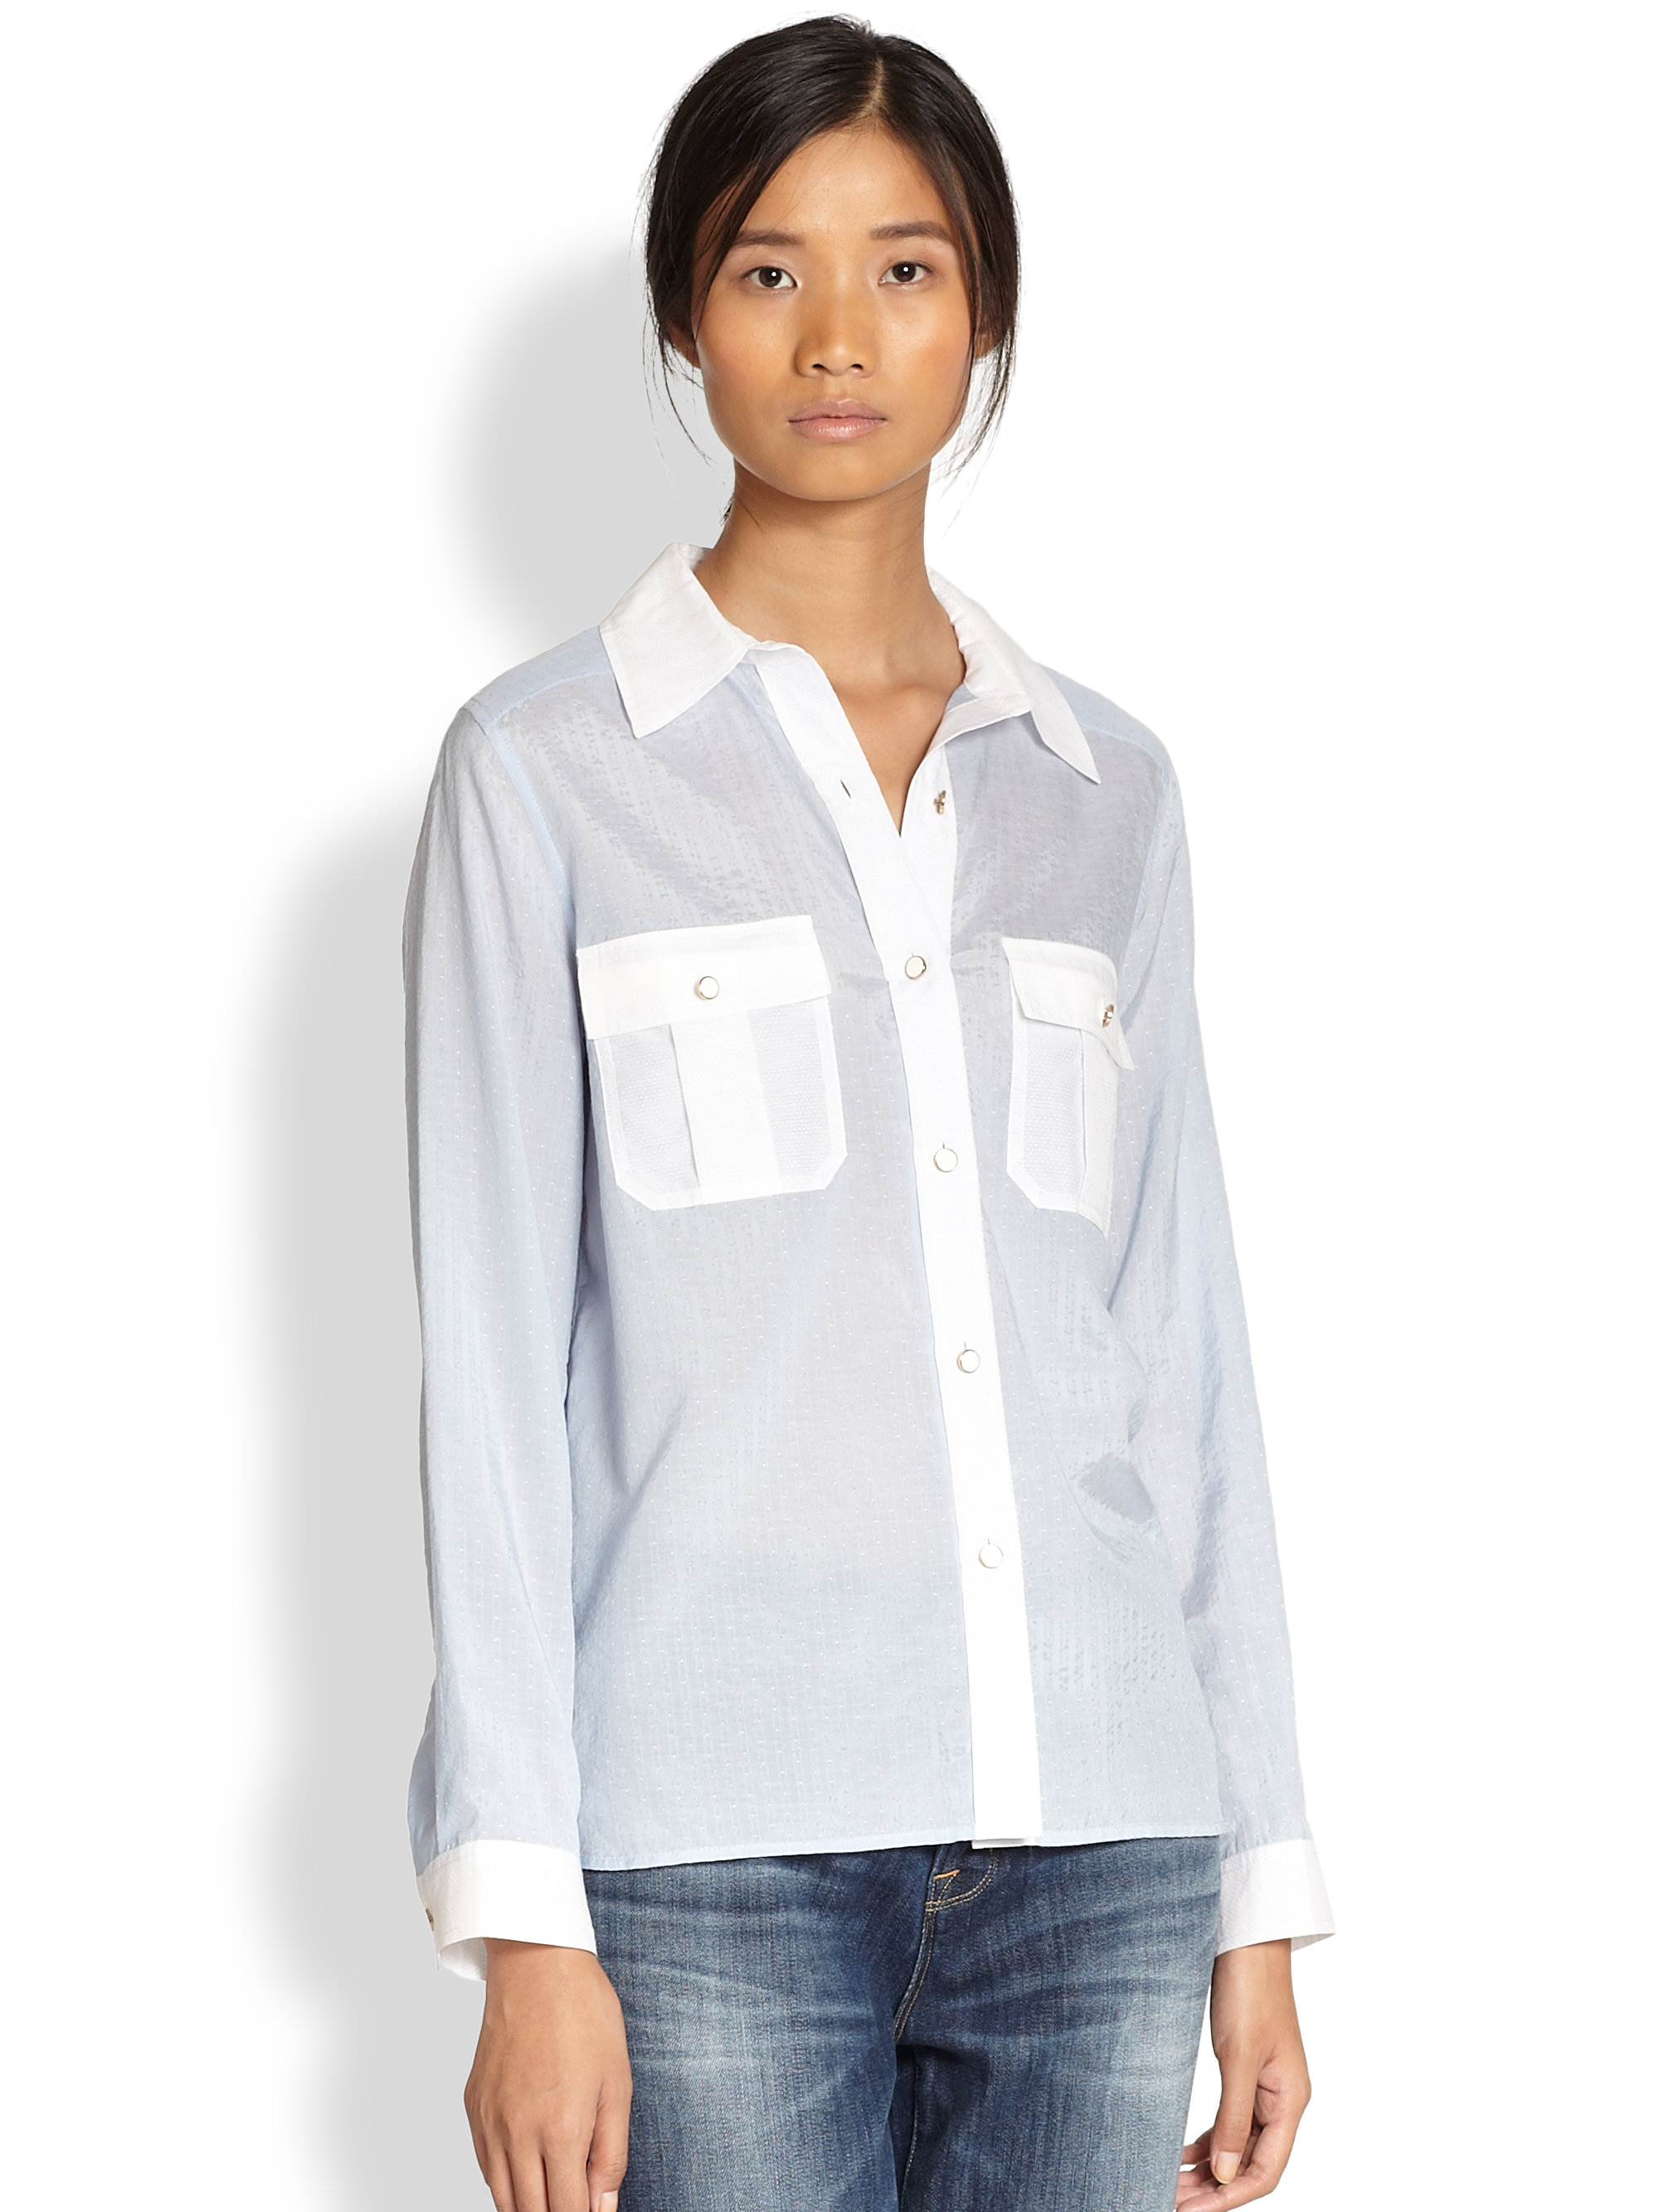 Marc by marc jacobs Dalia Dobby Blouse in Blue | Lyst